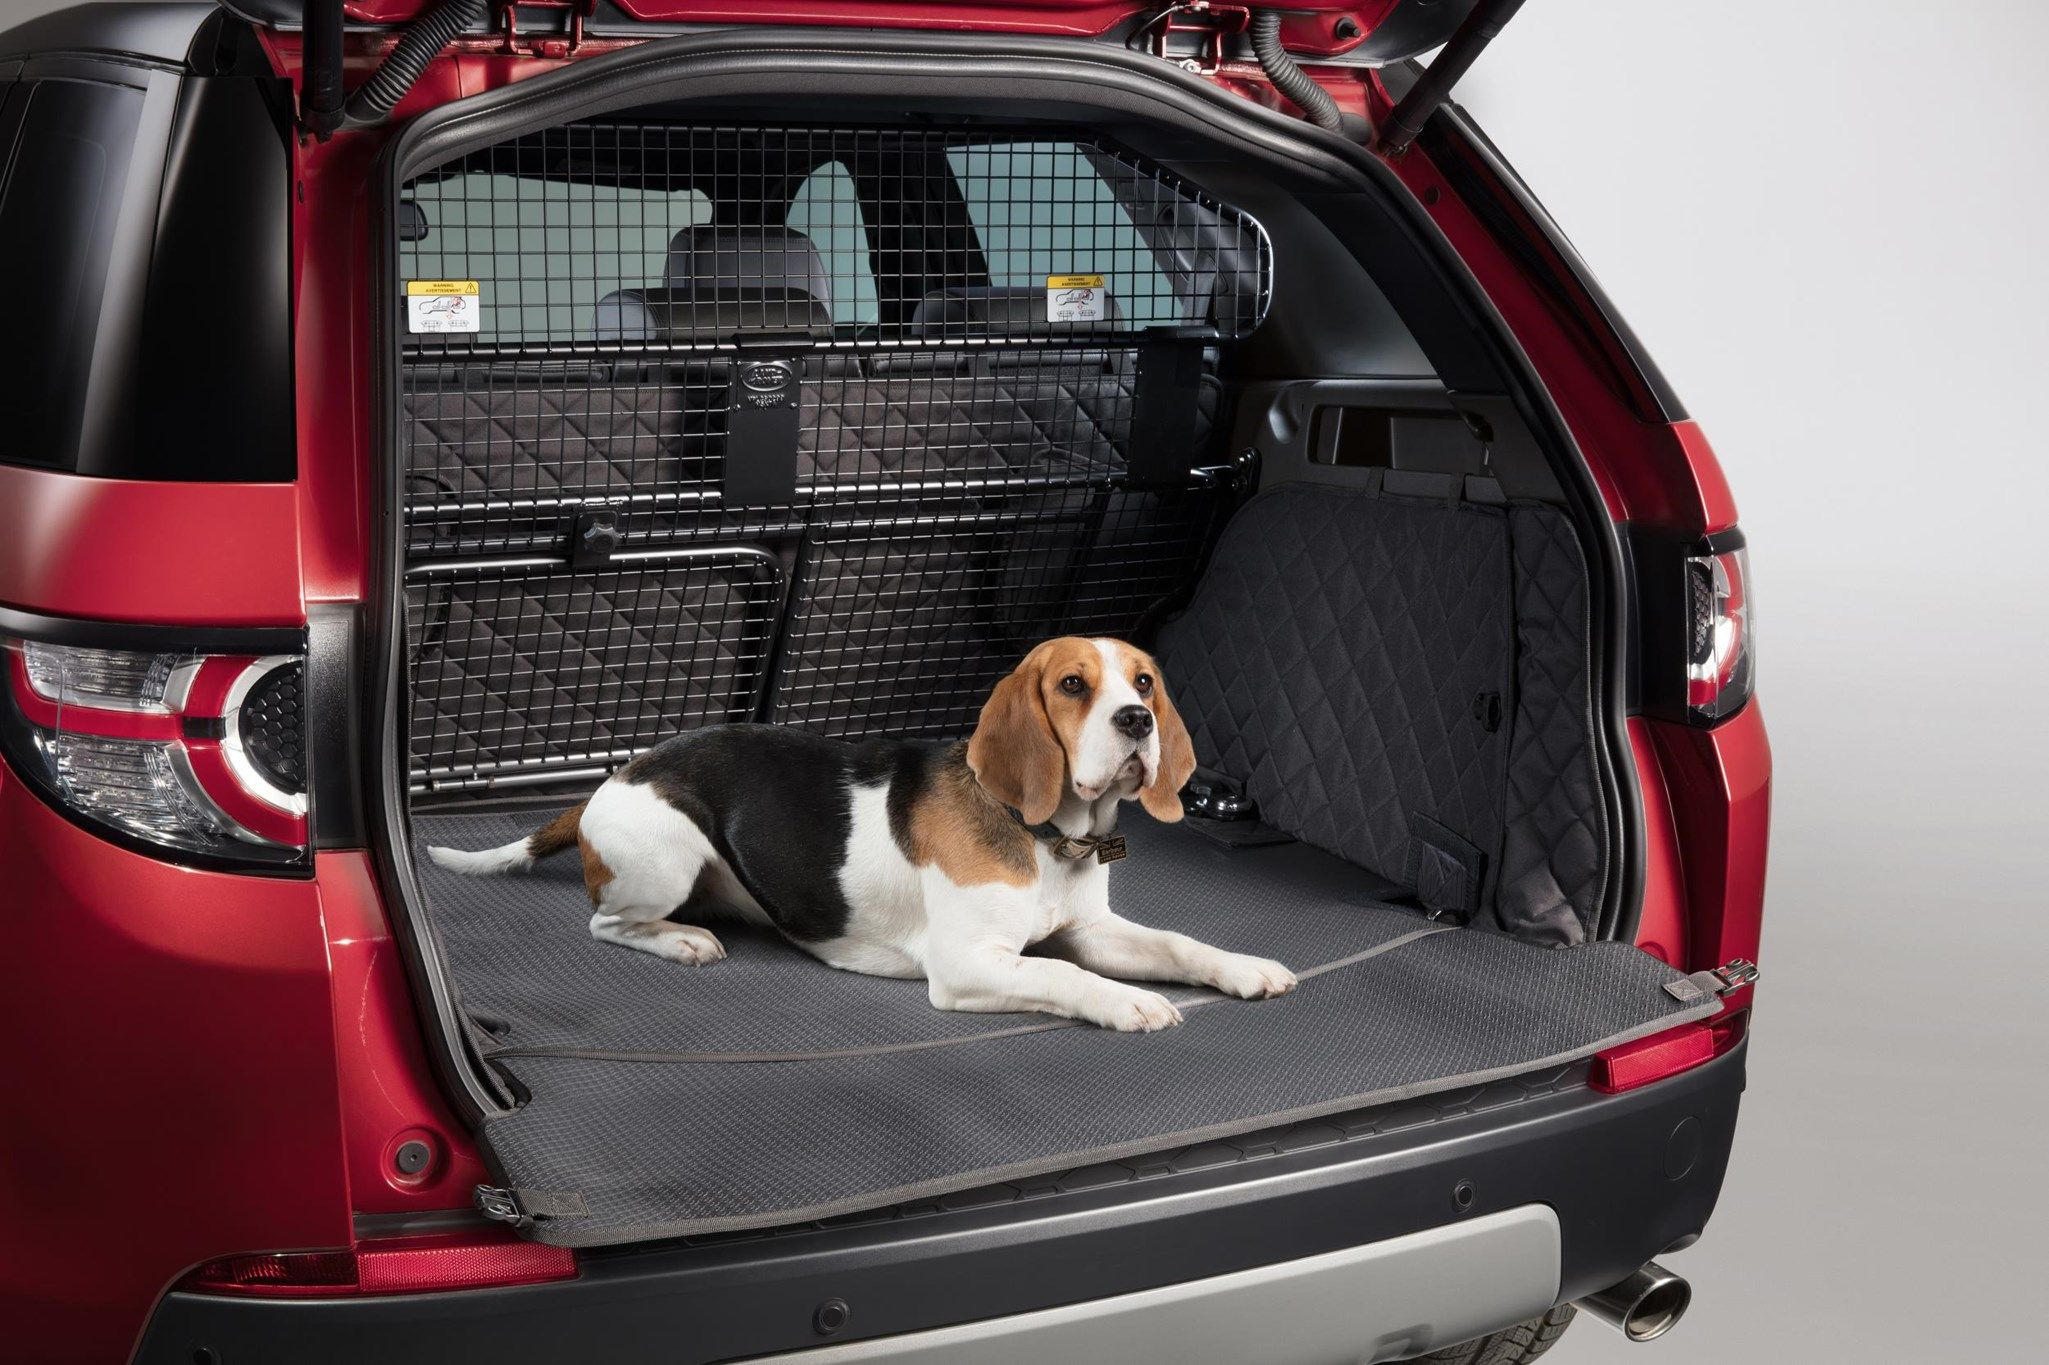 We can arrange for the safe transport of your animals